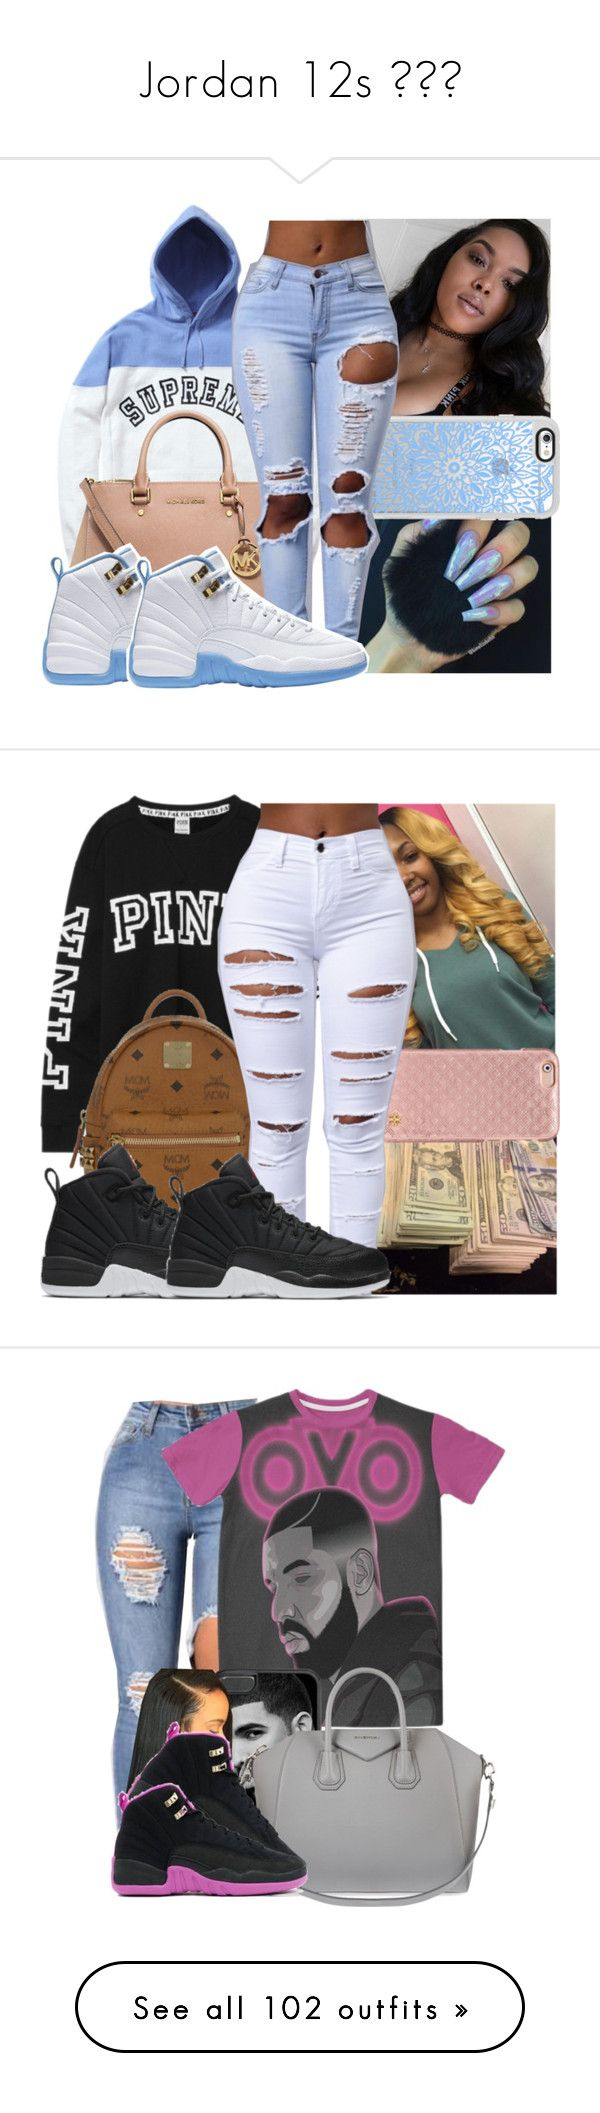 Jordan 12s  by prinxcess-adri ❤ liked on Polyvore featuring MICHAEL Michael Kors, Sache, Casetify, Victorias Secret, MCM, Tory Burch, NIKE, Givenchy, Alexander Wang and Yves Saint Laurent